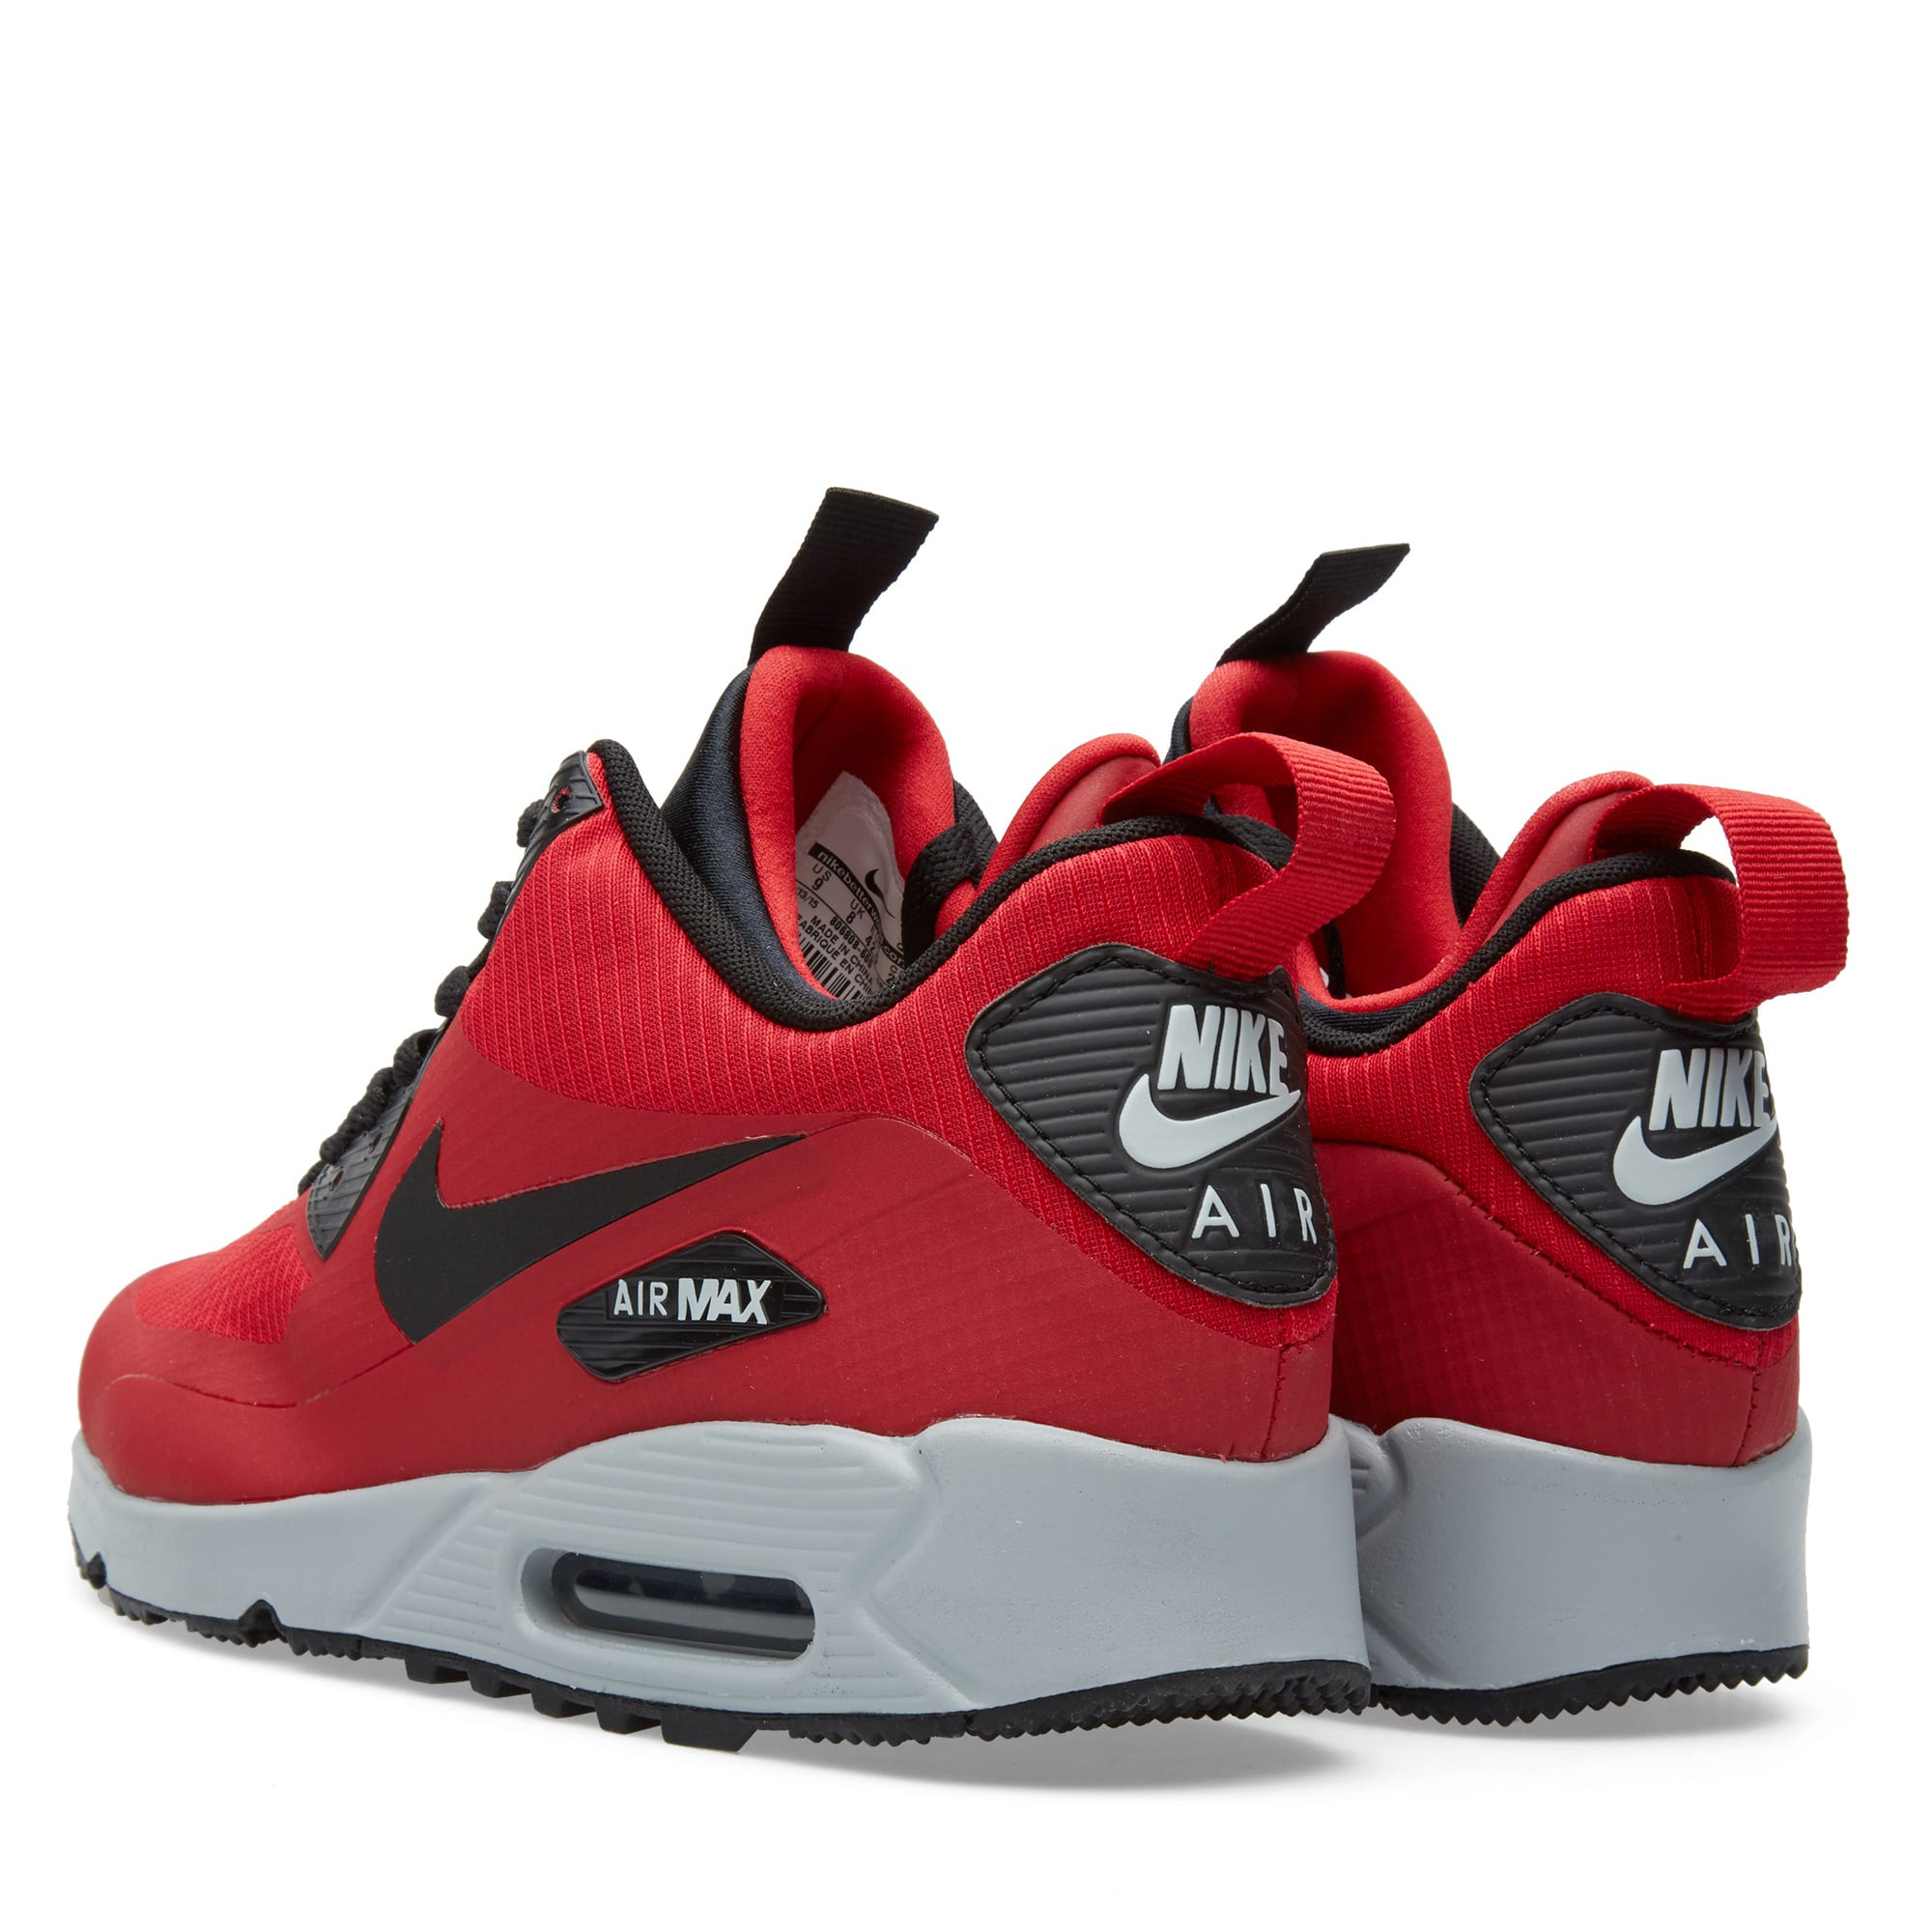 detailing 29acb 210ed Nike Air Max 90 Mid Winter Gym Red, Black   Wolf Grey   END.